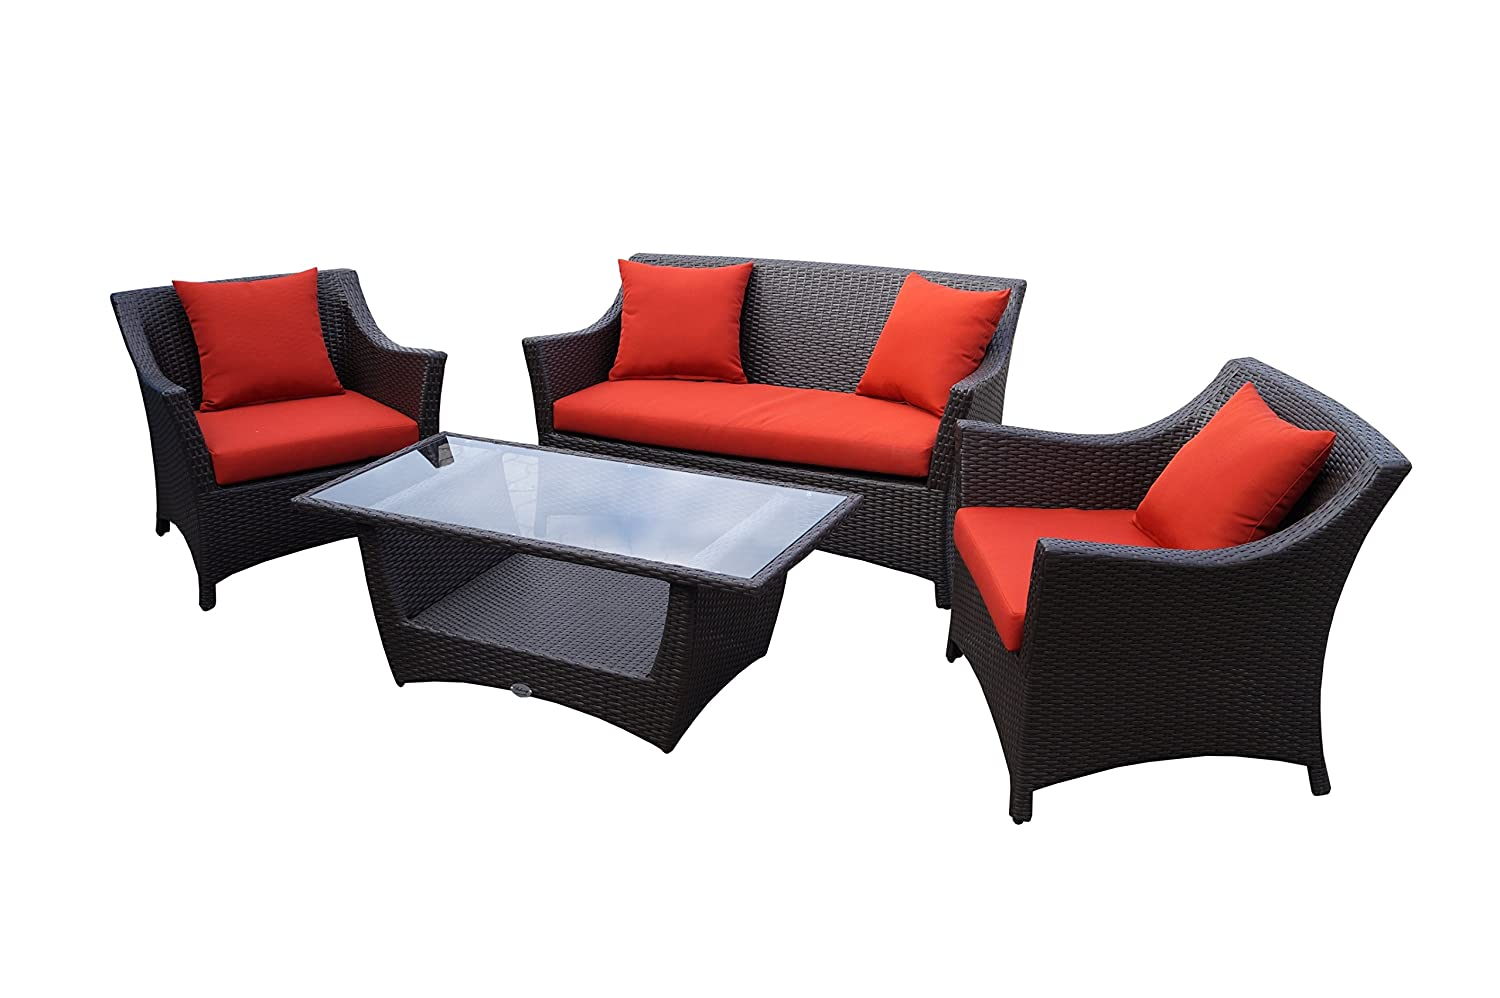 rattan lounge set polyrattan gartenm bel garnitur sofa. Black Bedroom Furniture Sets. Home Design Ideas